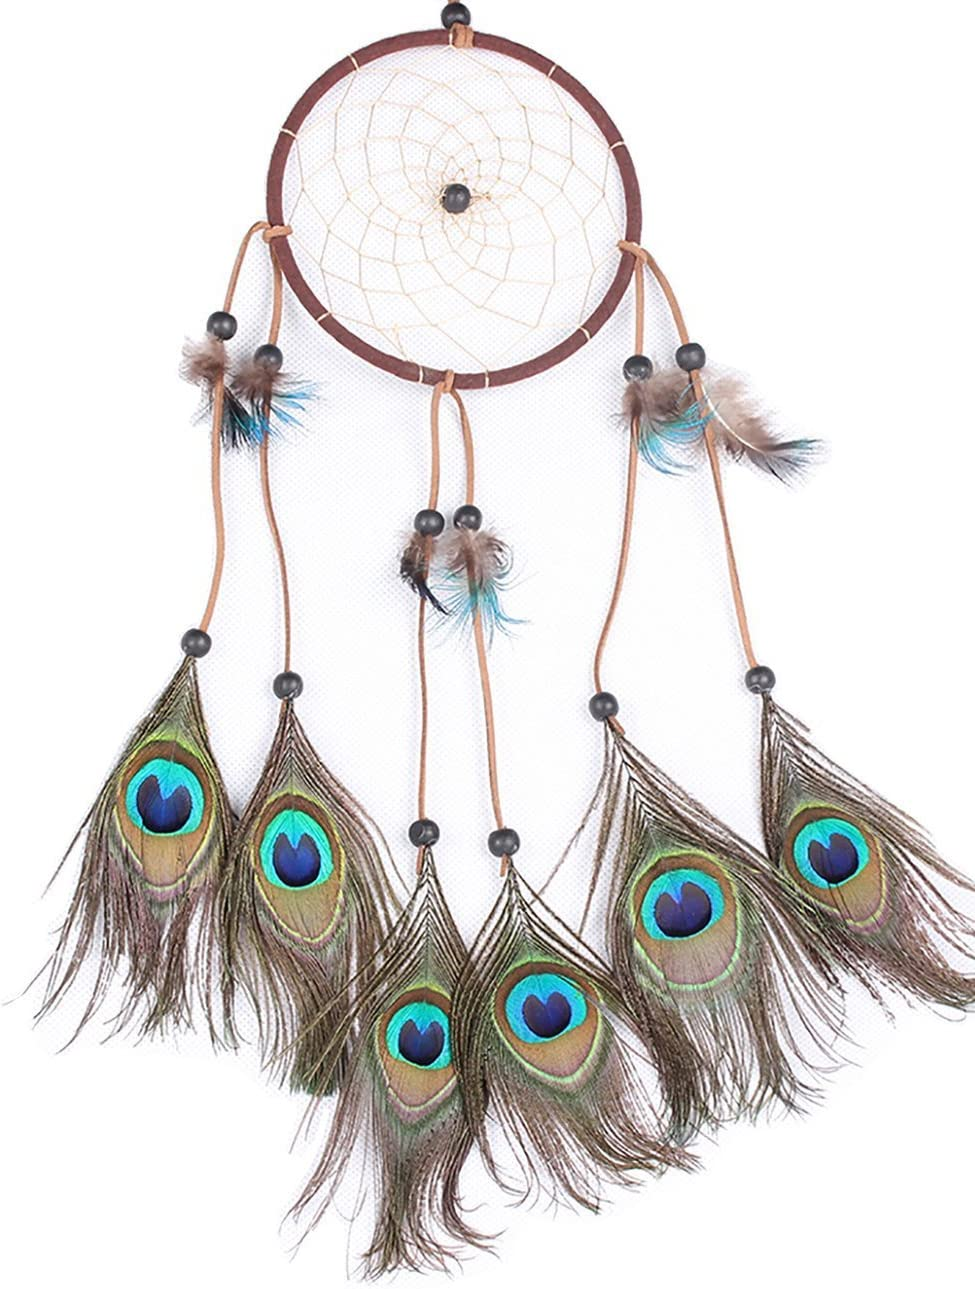 LBTOEM Handmade Dream Catcher Peacock Feather Dreamcatcher Indian Tradition Circular Net for Car Kids Bed Room Wall Hanging Decoration Decor Ornament Craft Gift